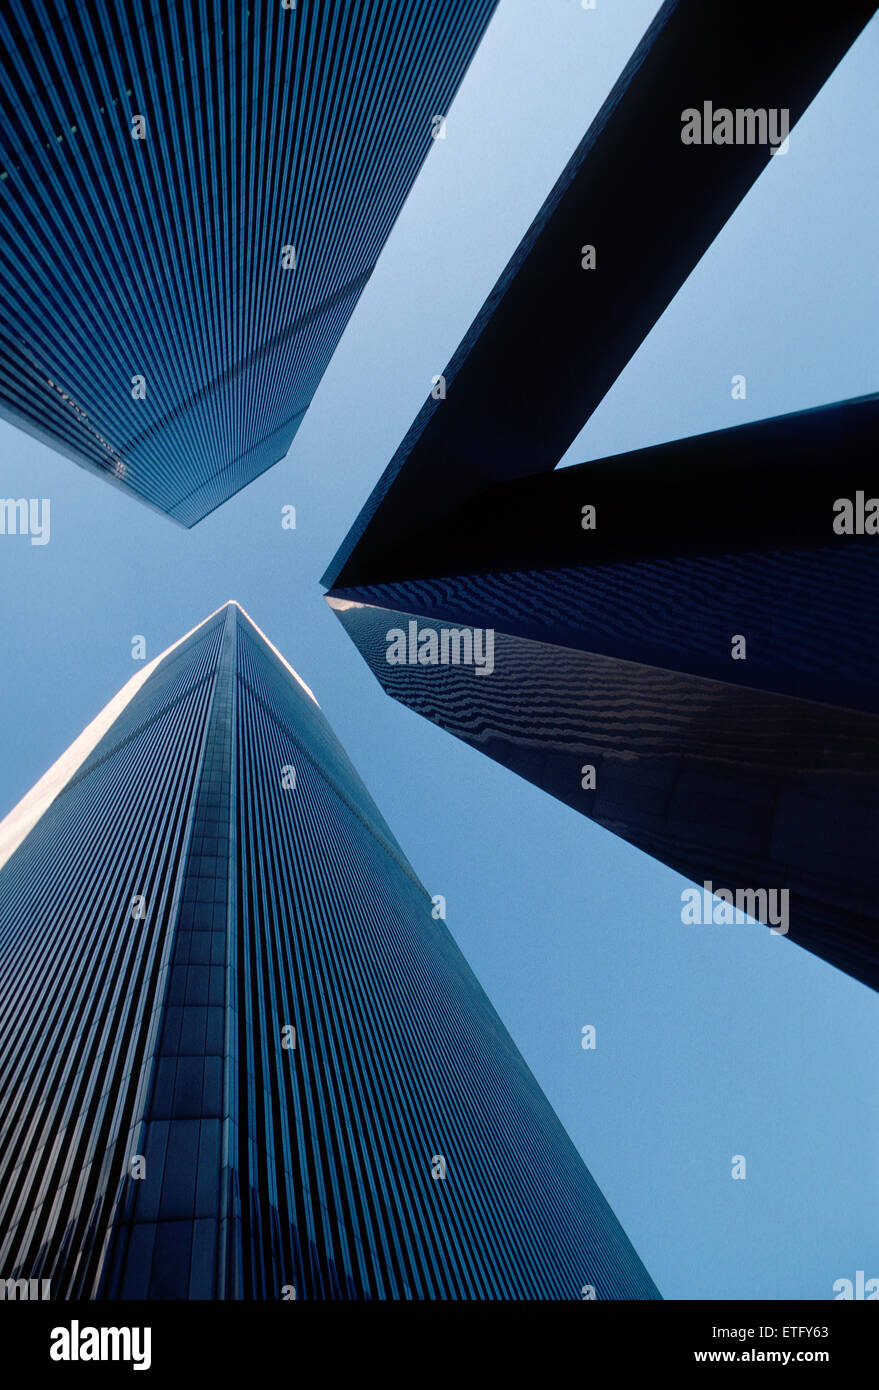 World Trade Center towers framed by modern sculpture, New York, New York, USA - Stock Image